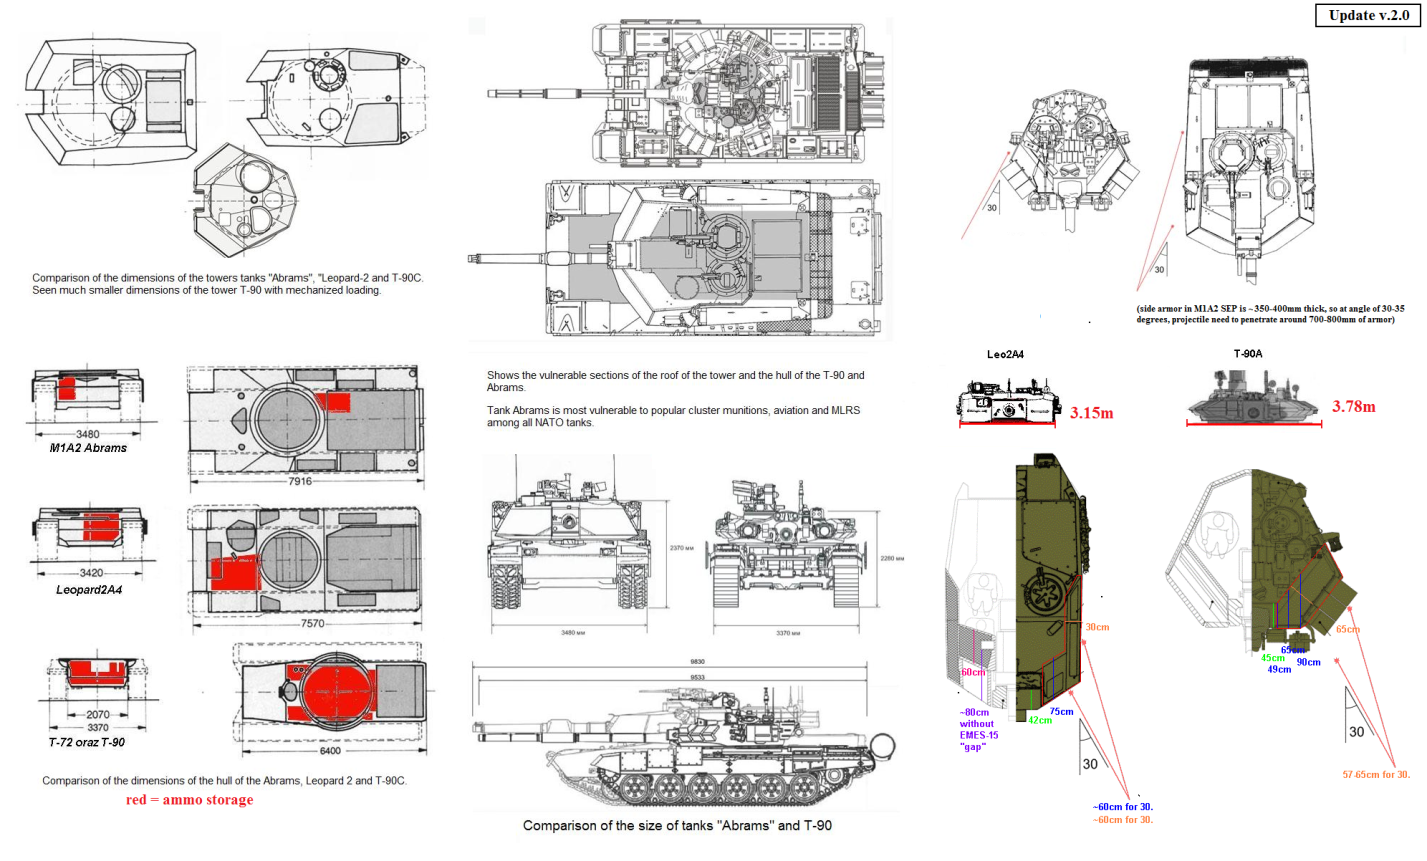 F:\CloudStation\Saker\HeavyMetal\comparison_abrams_t90_leopard_UPDATE2.png